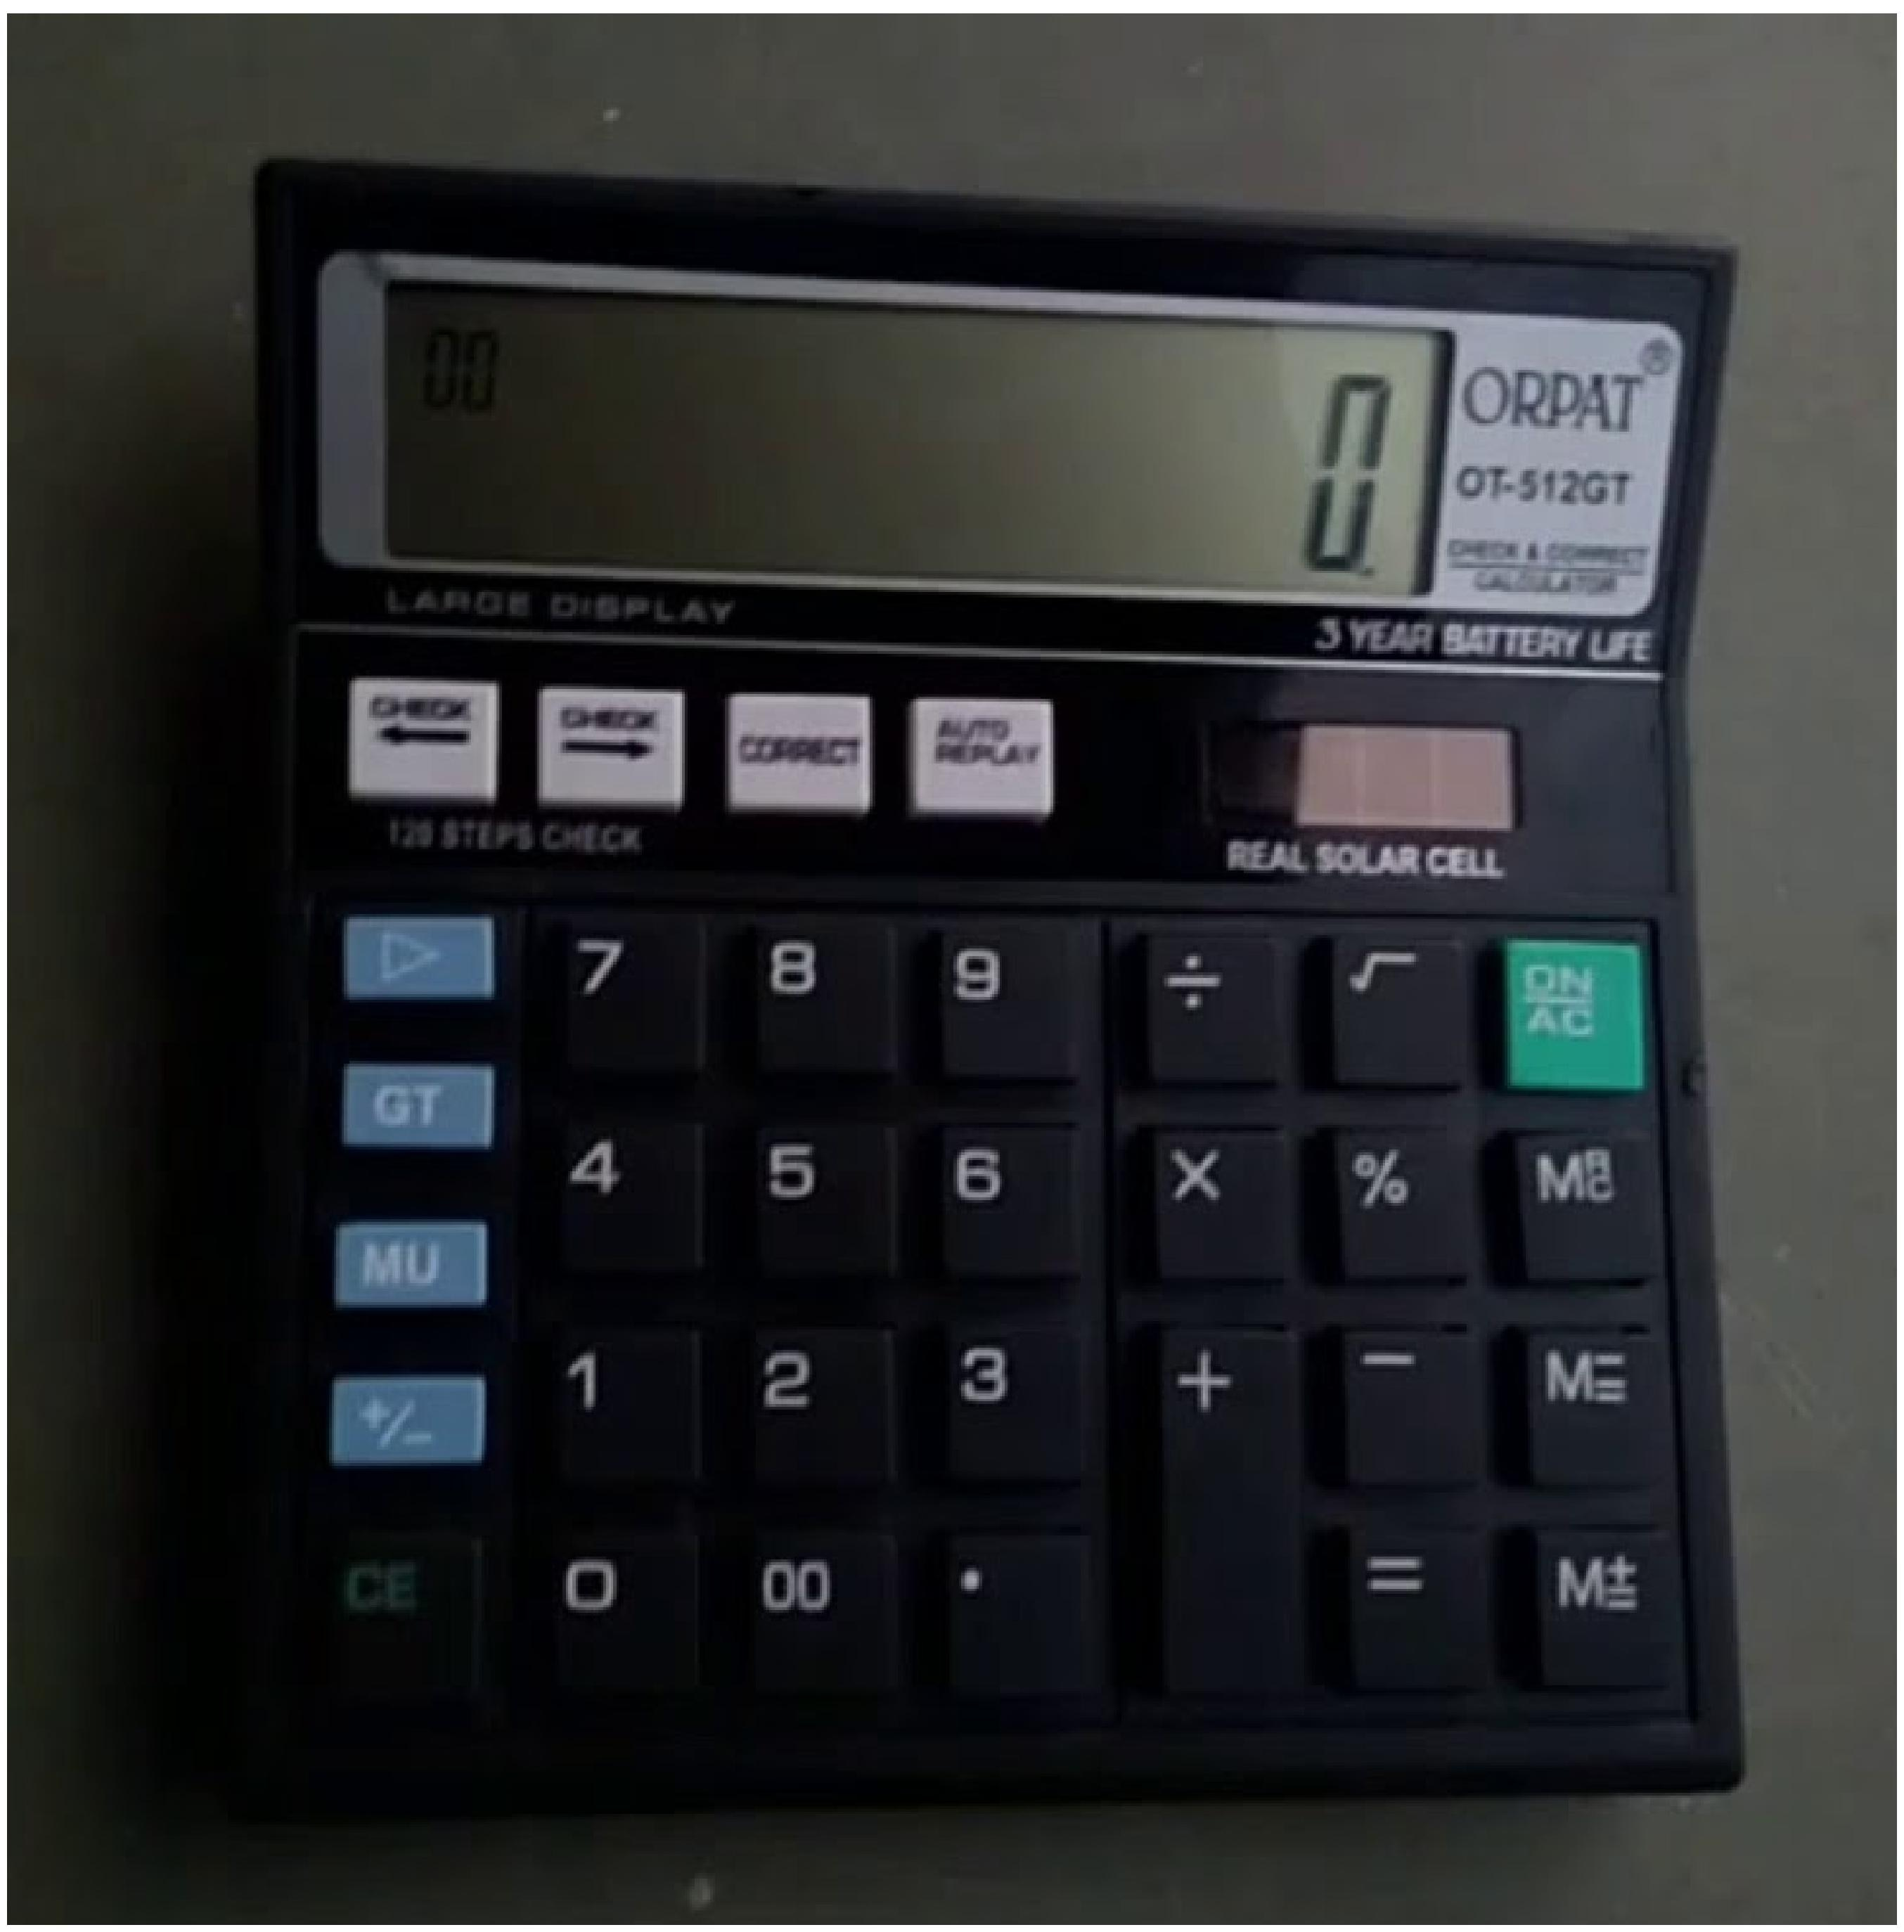 Orpat 0.35 Calculator OT-512GT Basic Black